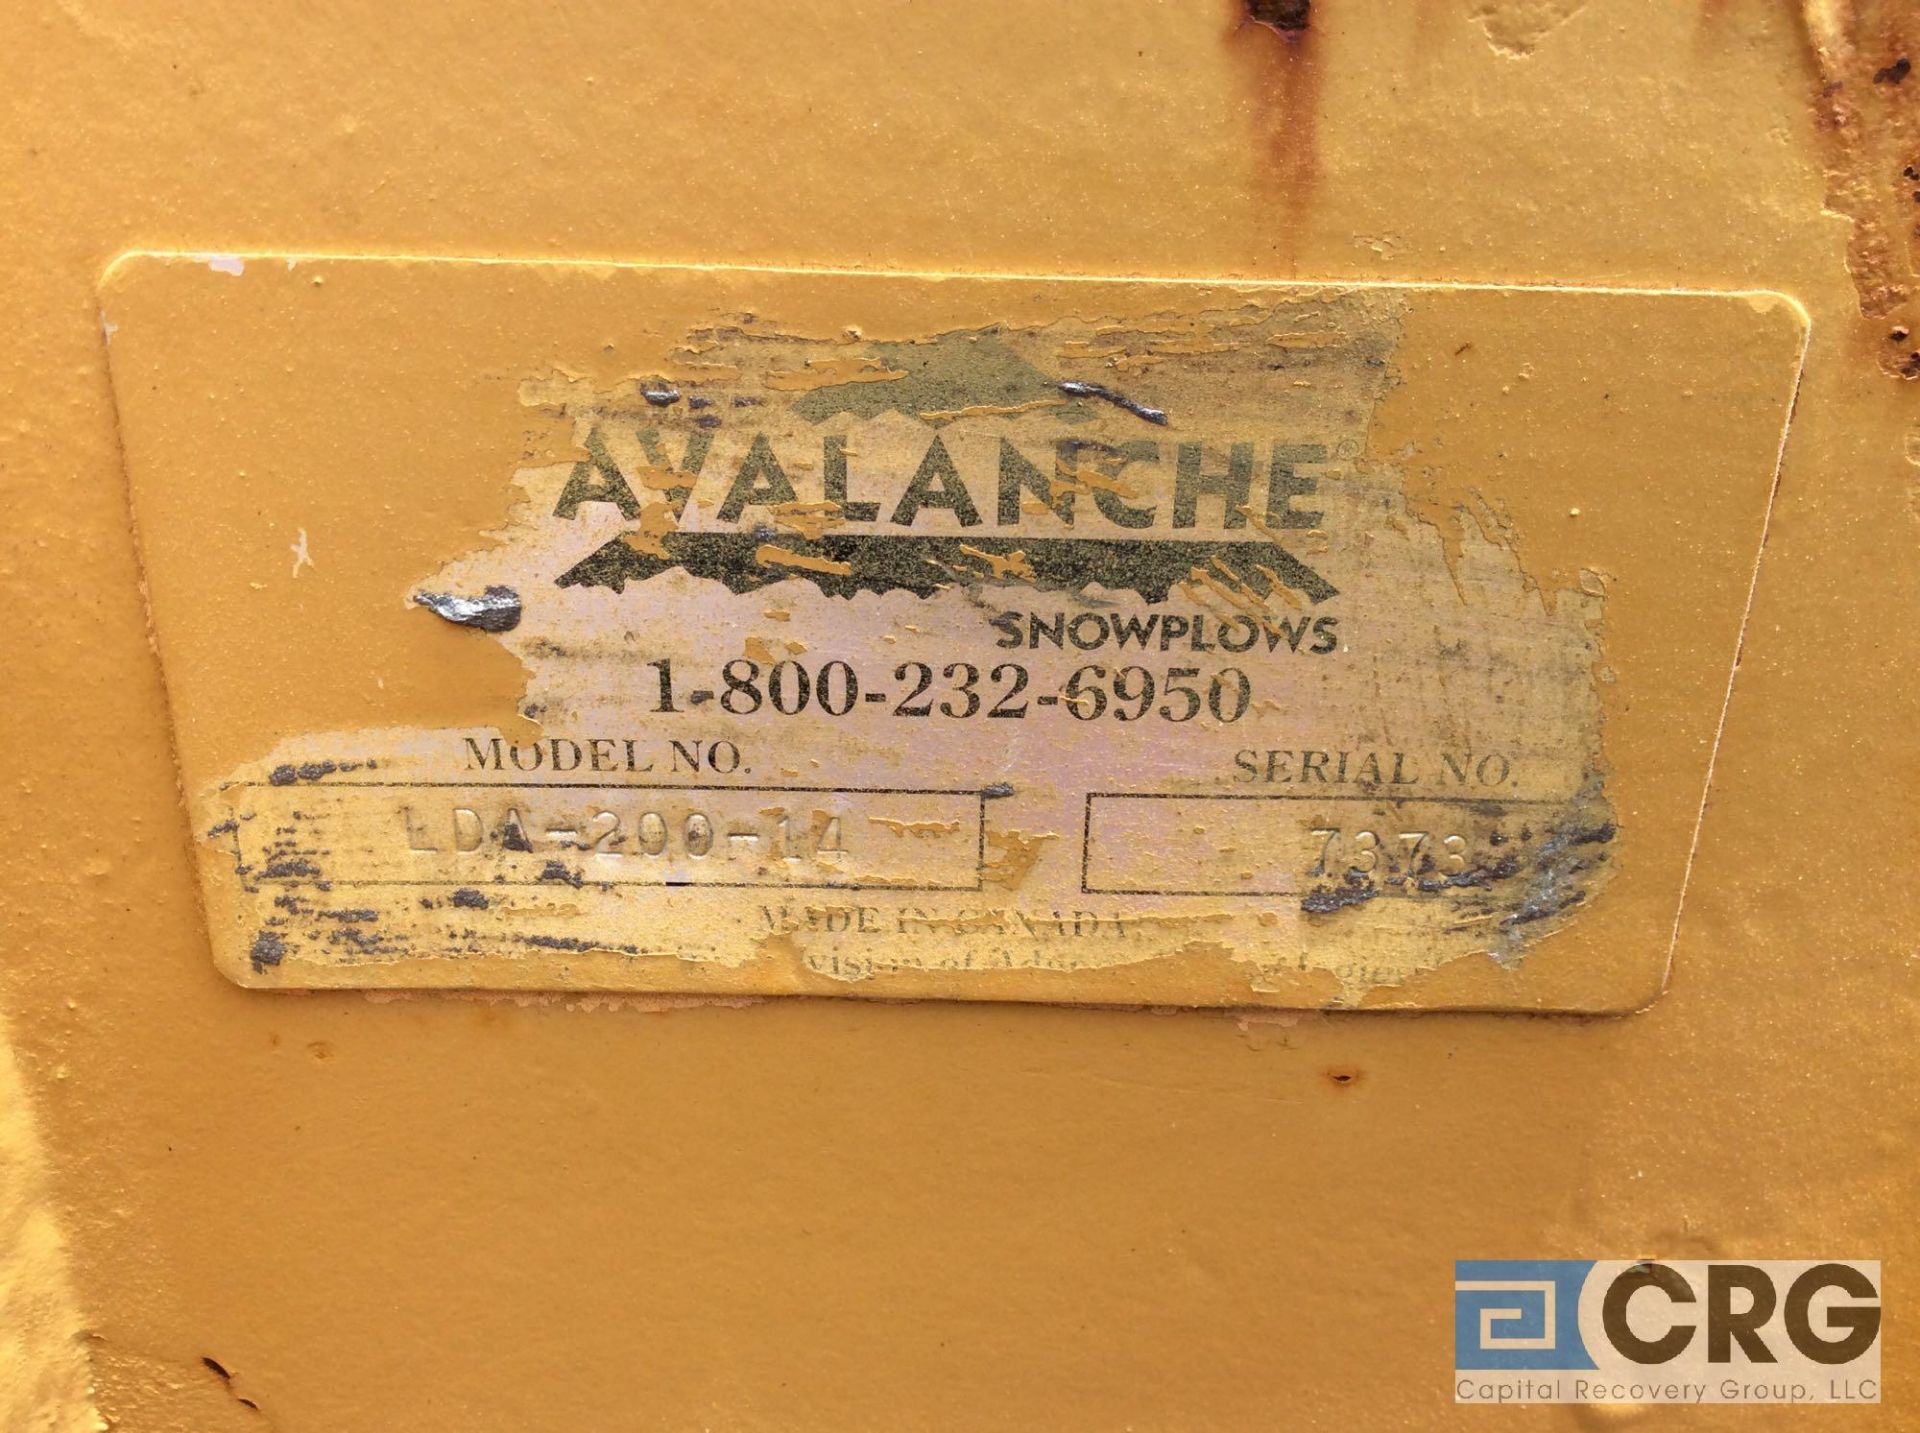 """Lot 497 - Avalanche LDA-200-14 14' Loader model snow pusher, 52"""" tall. Rubber cutting edge."""